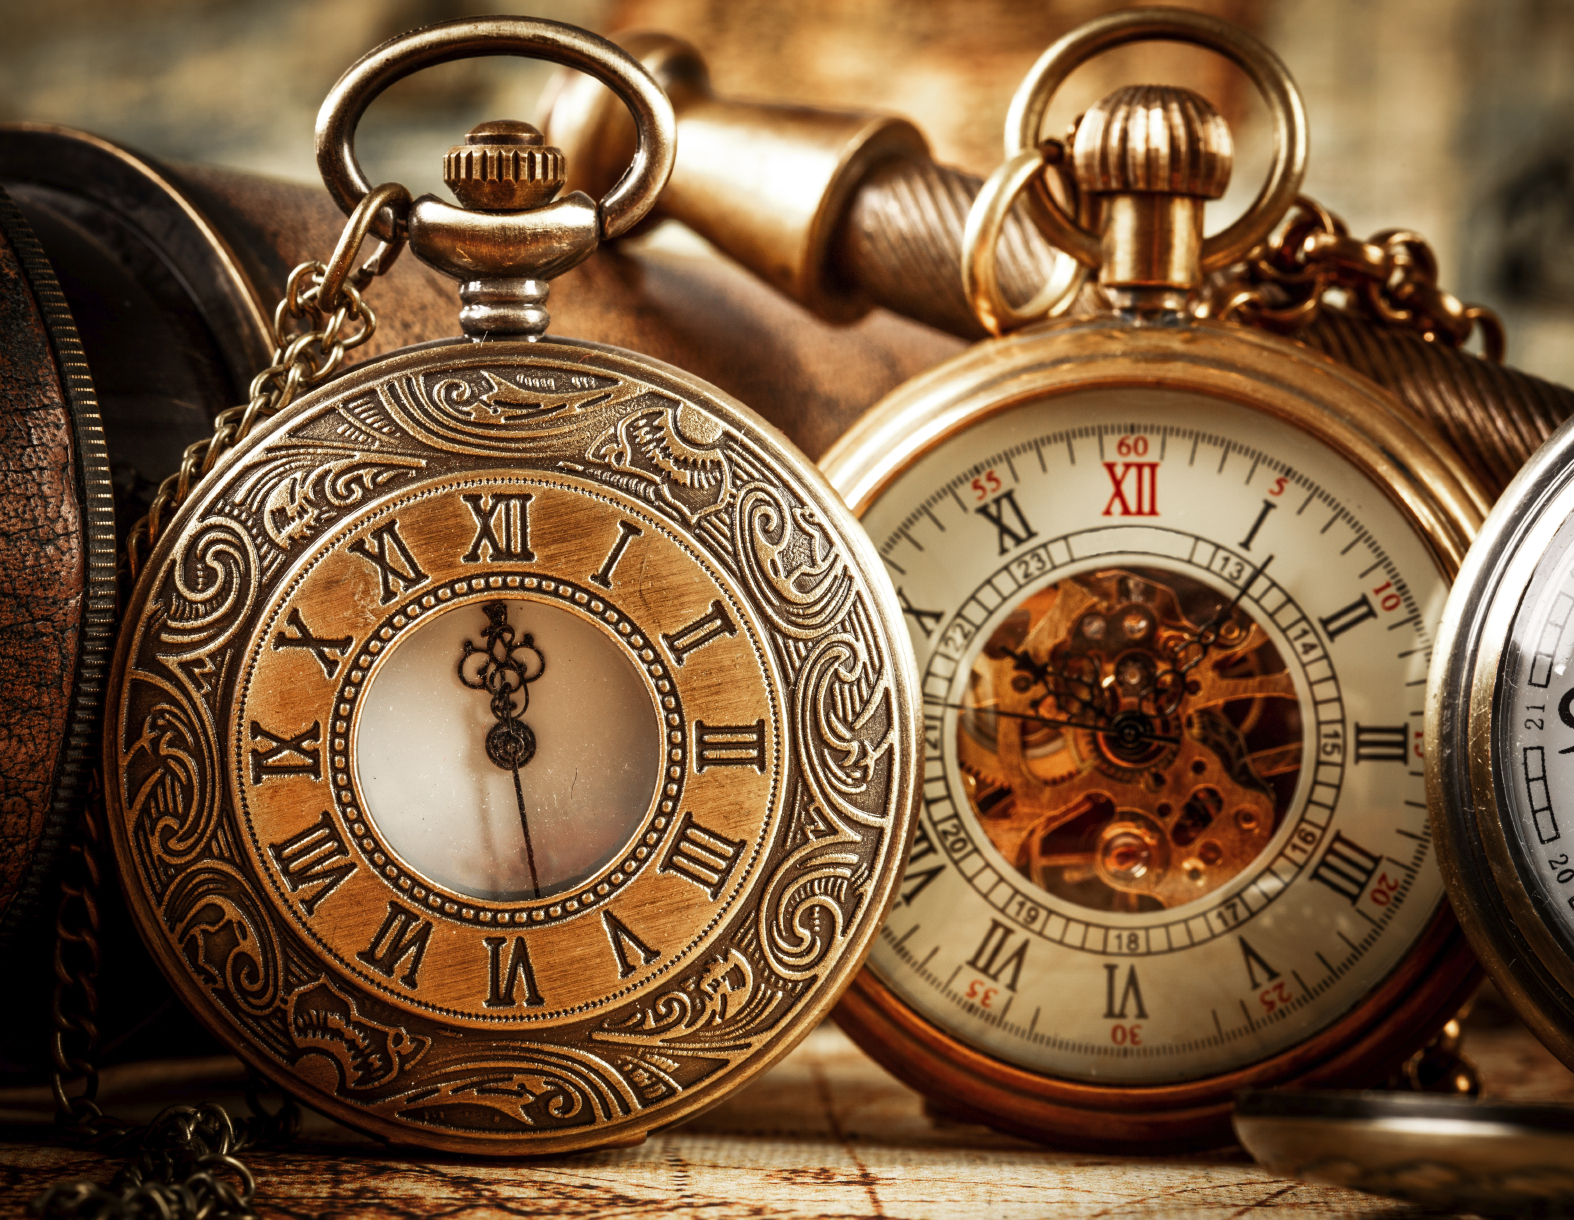 Vintage Antique pocket watch (Getty Images)